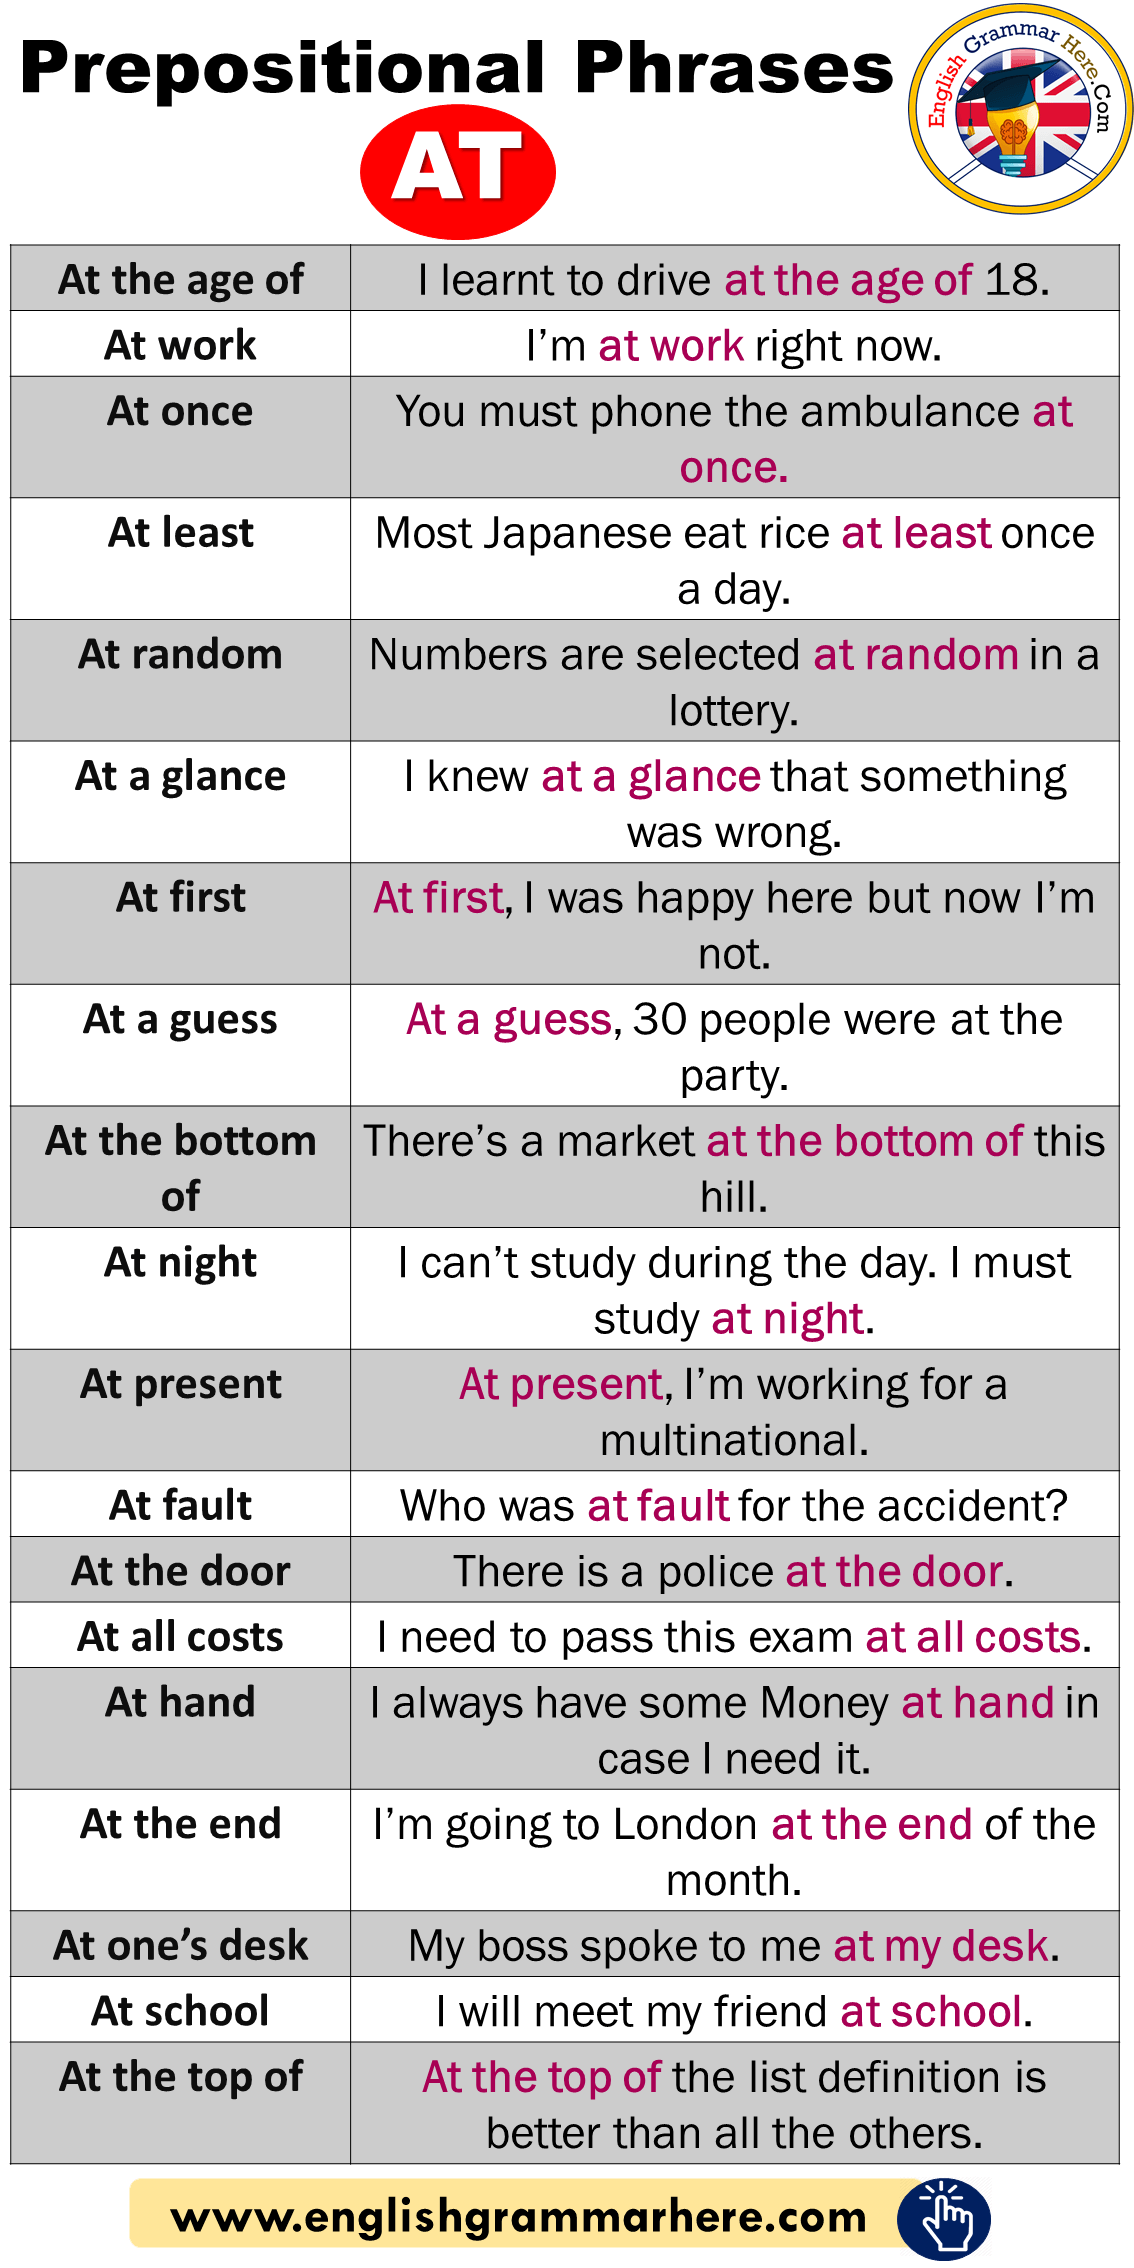 Prepositional Phrases At Example Sentences English Grammar Here Prepositional Phrases English Vocabulary Words English Prepositions